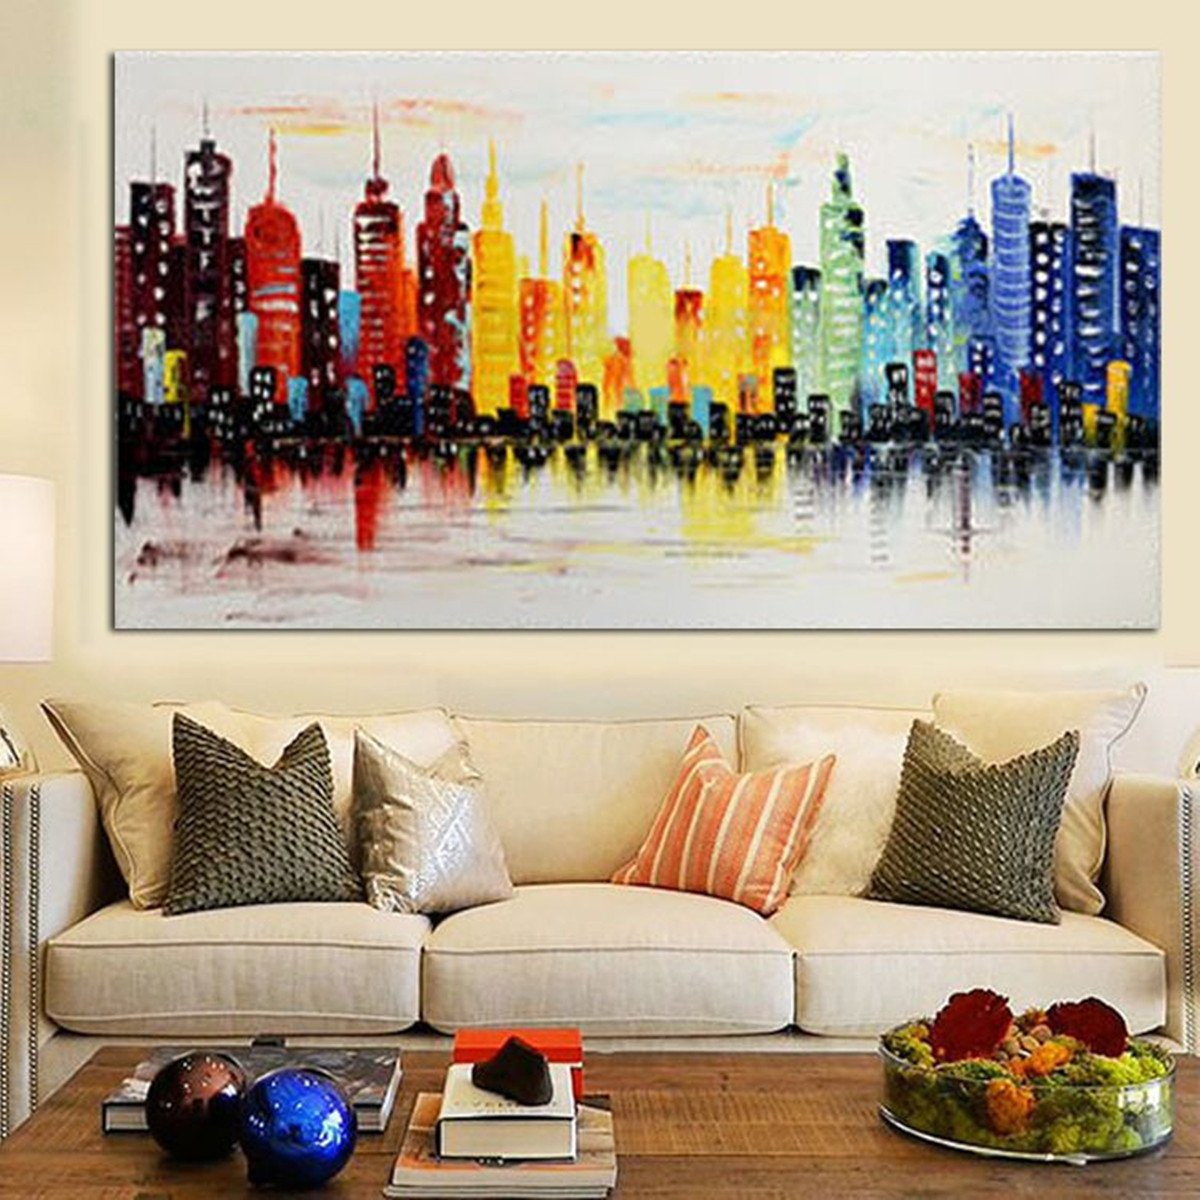 Modern Living Room Wall Decor Elegant 120x60cm Modern City Canvas Abstract Painting Print Living Room Art Wall Decor No Frame